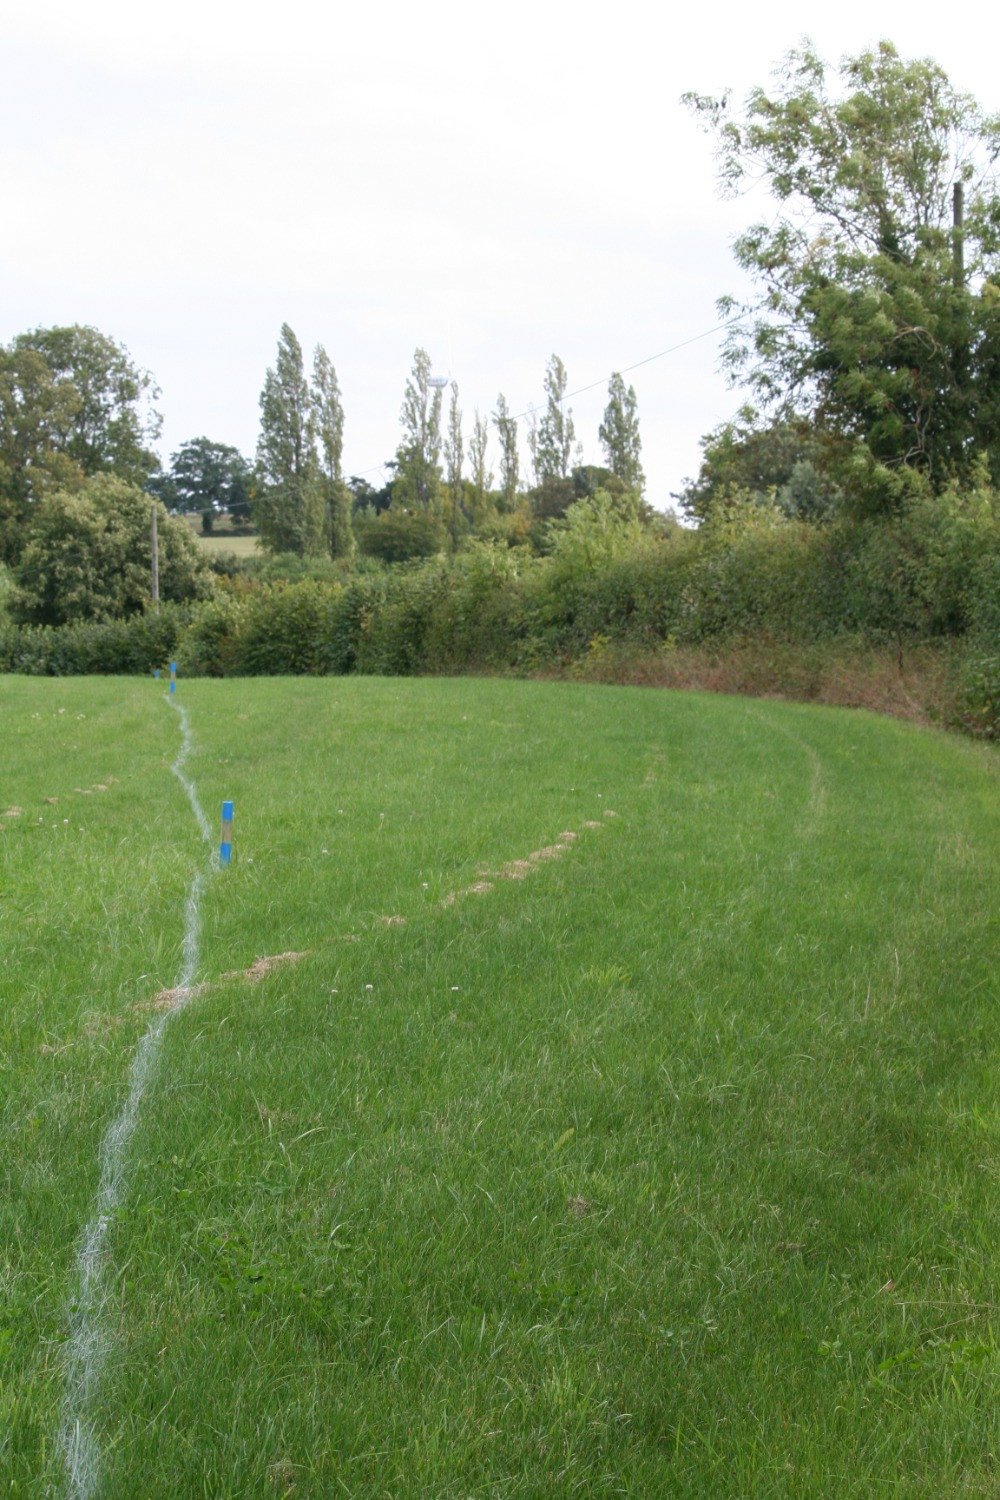 The hedge on the right has to move back to the white line...